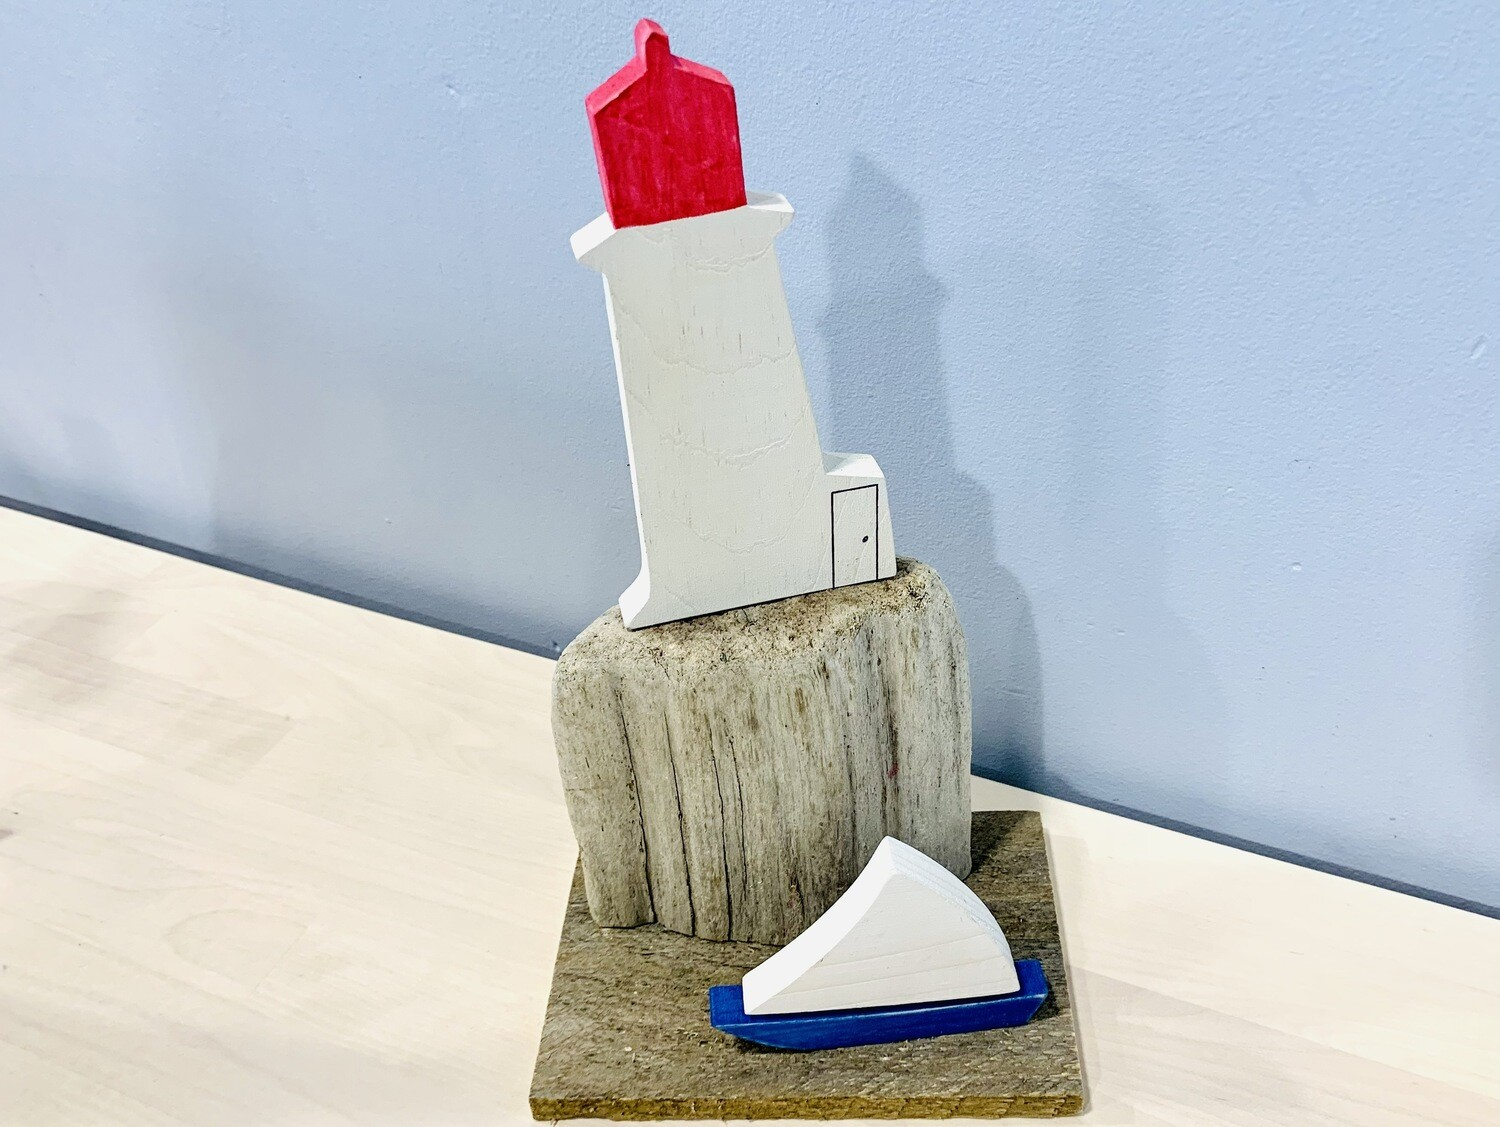 Blue Sailboat and Lighthouse Scene - Jerry Walsh